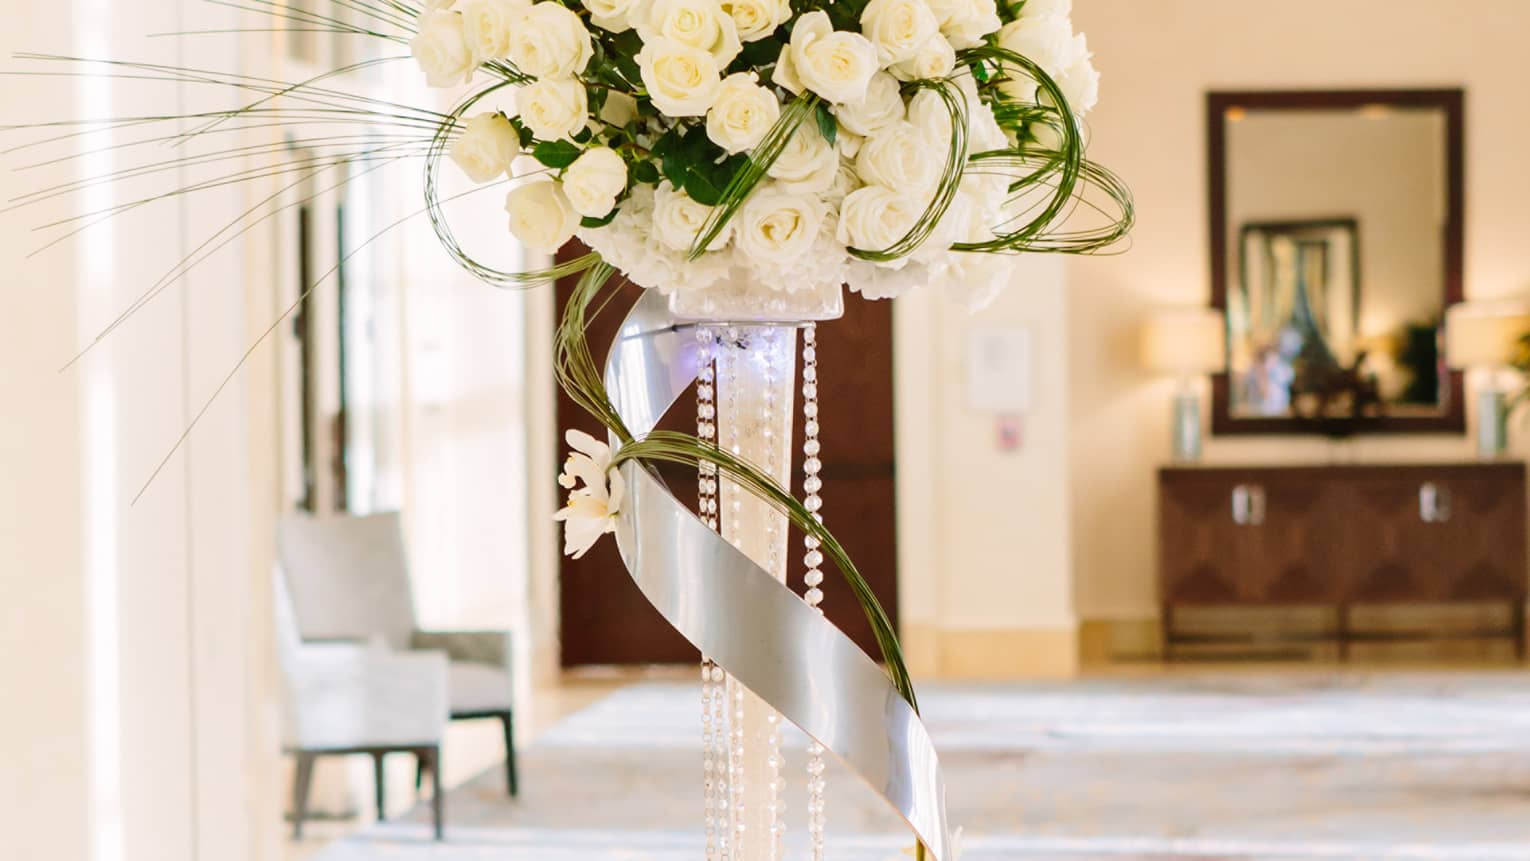 Wedding accent table with rows of name cards, tall white flower arrangement with ribbon